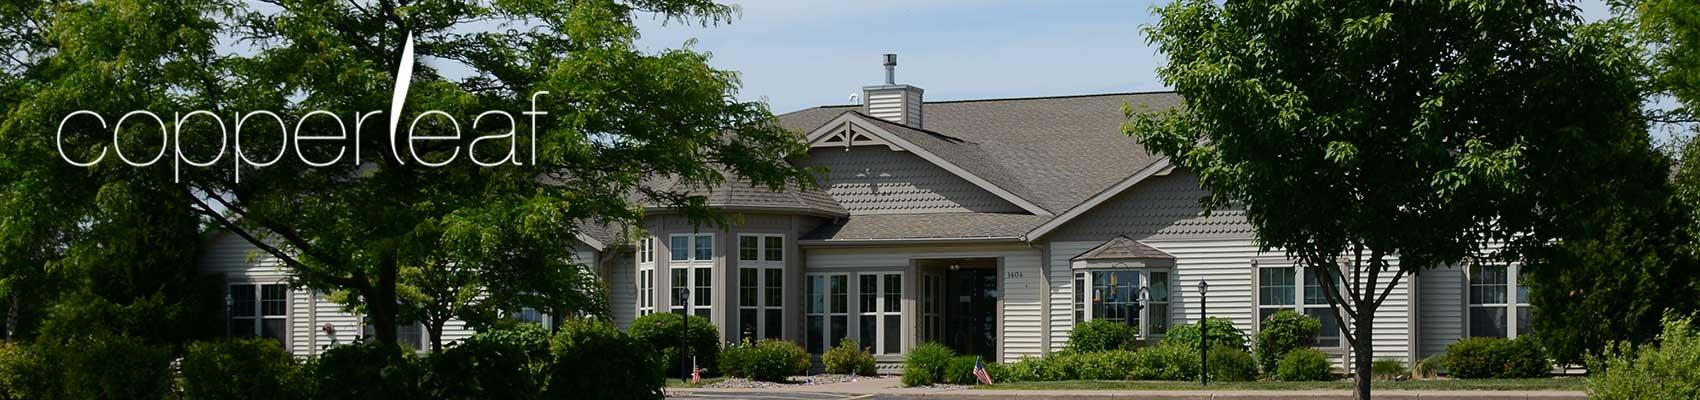 assisted living facilities in Wausau Wisconsin Marathon County